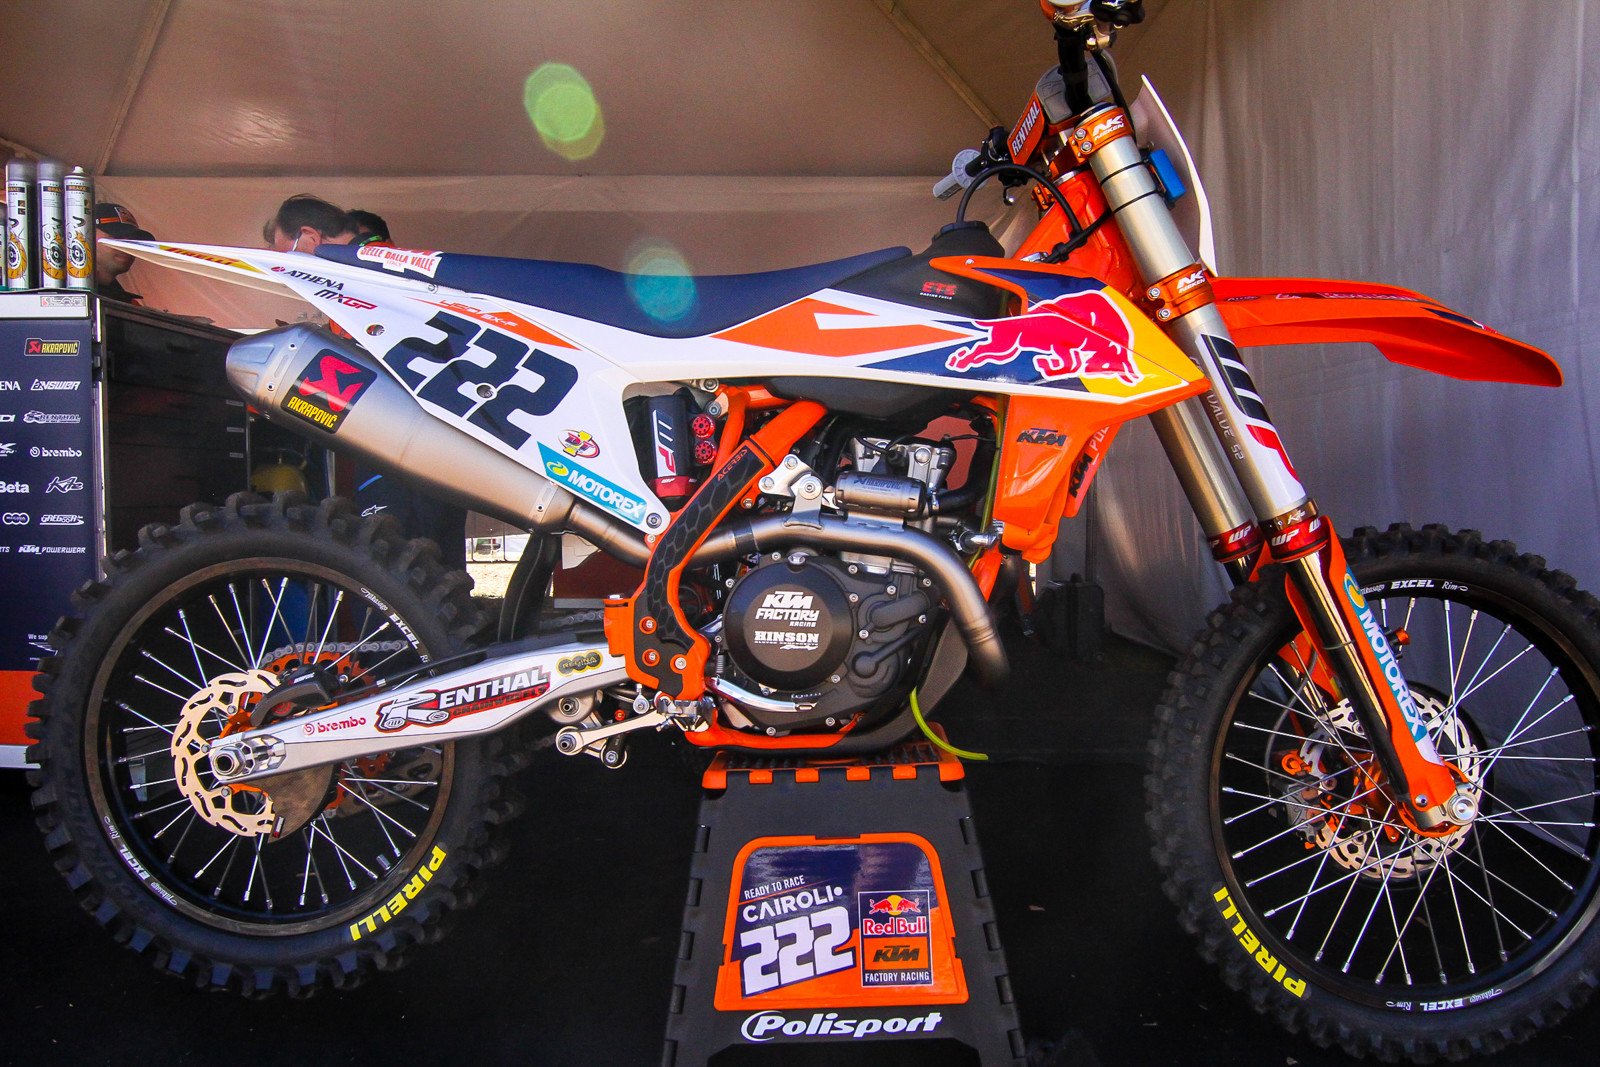 Antonio Cairoli's 2019 KTM 450 SX-F looks pretty similar to the US race bikes but one obvious difference is the head-pipe...which is quite a bit longer with different tapers. This is done to produce more low-end torque and along with some other minor engines changes to suit the MXGP riders needs.